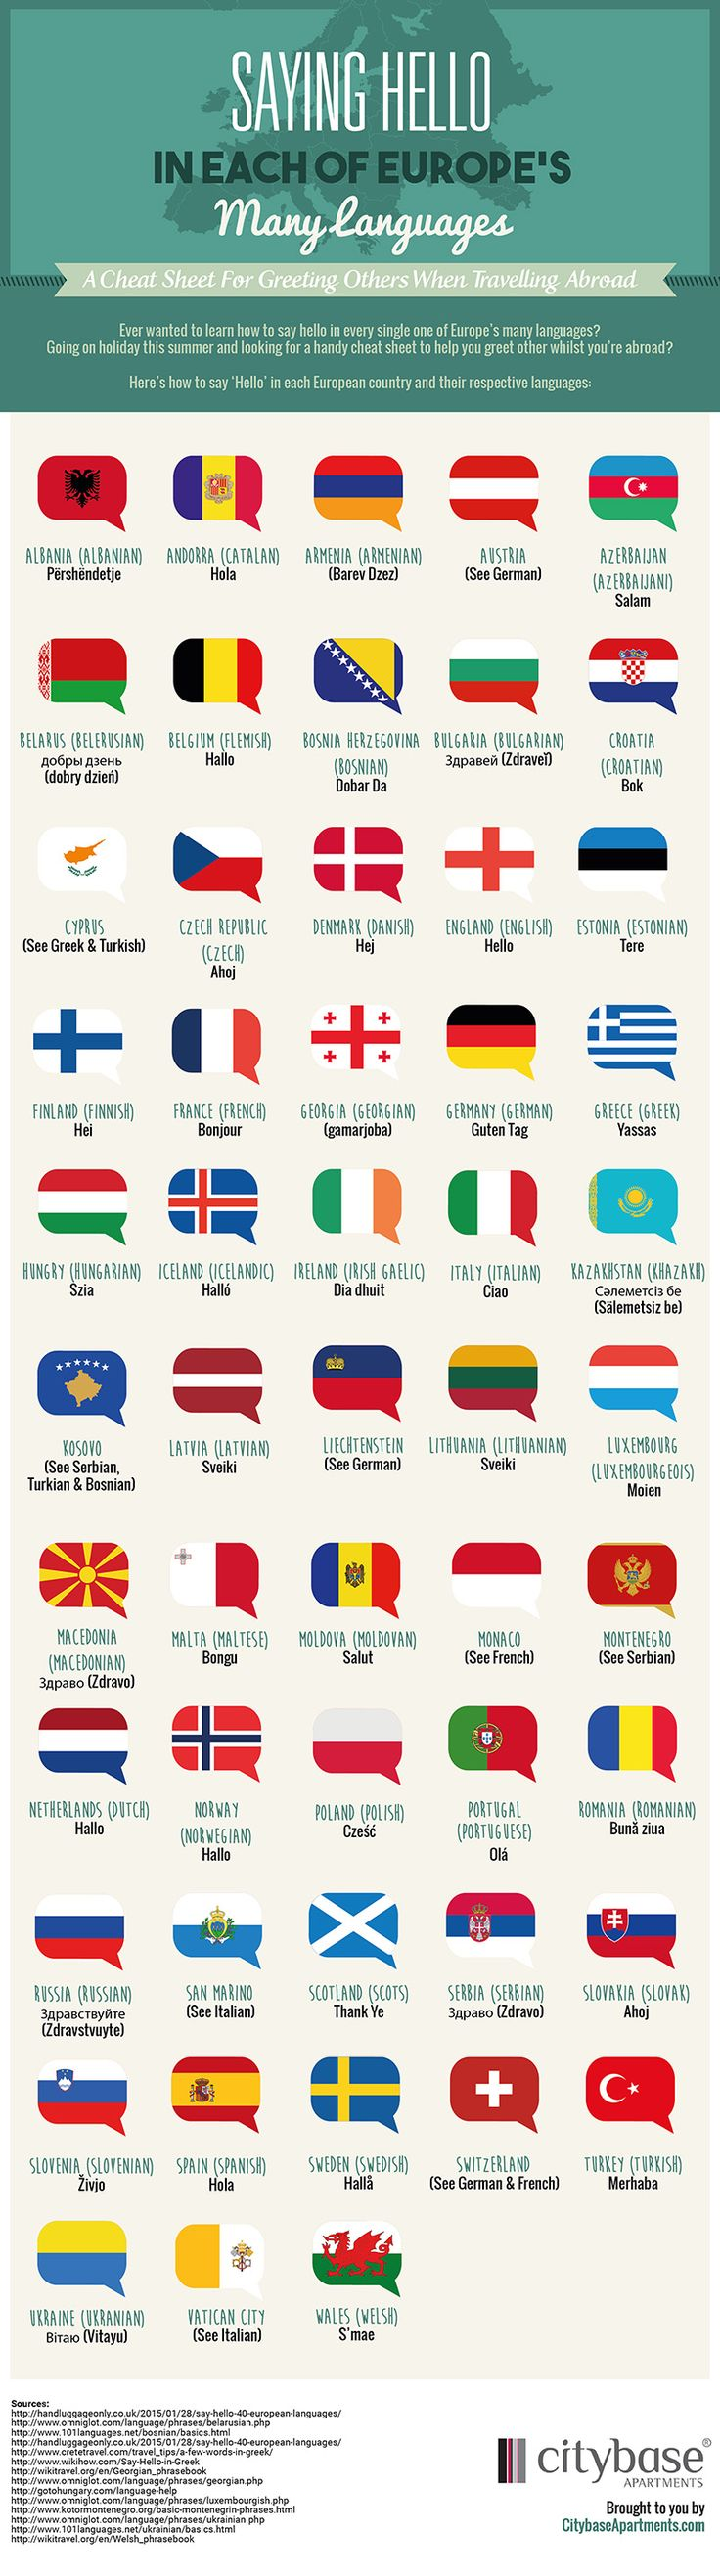 Learn how to say hello in all European languages